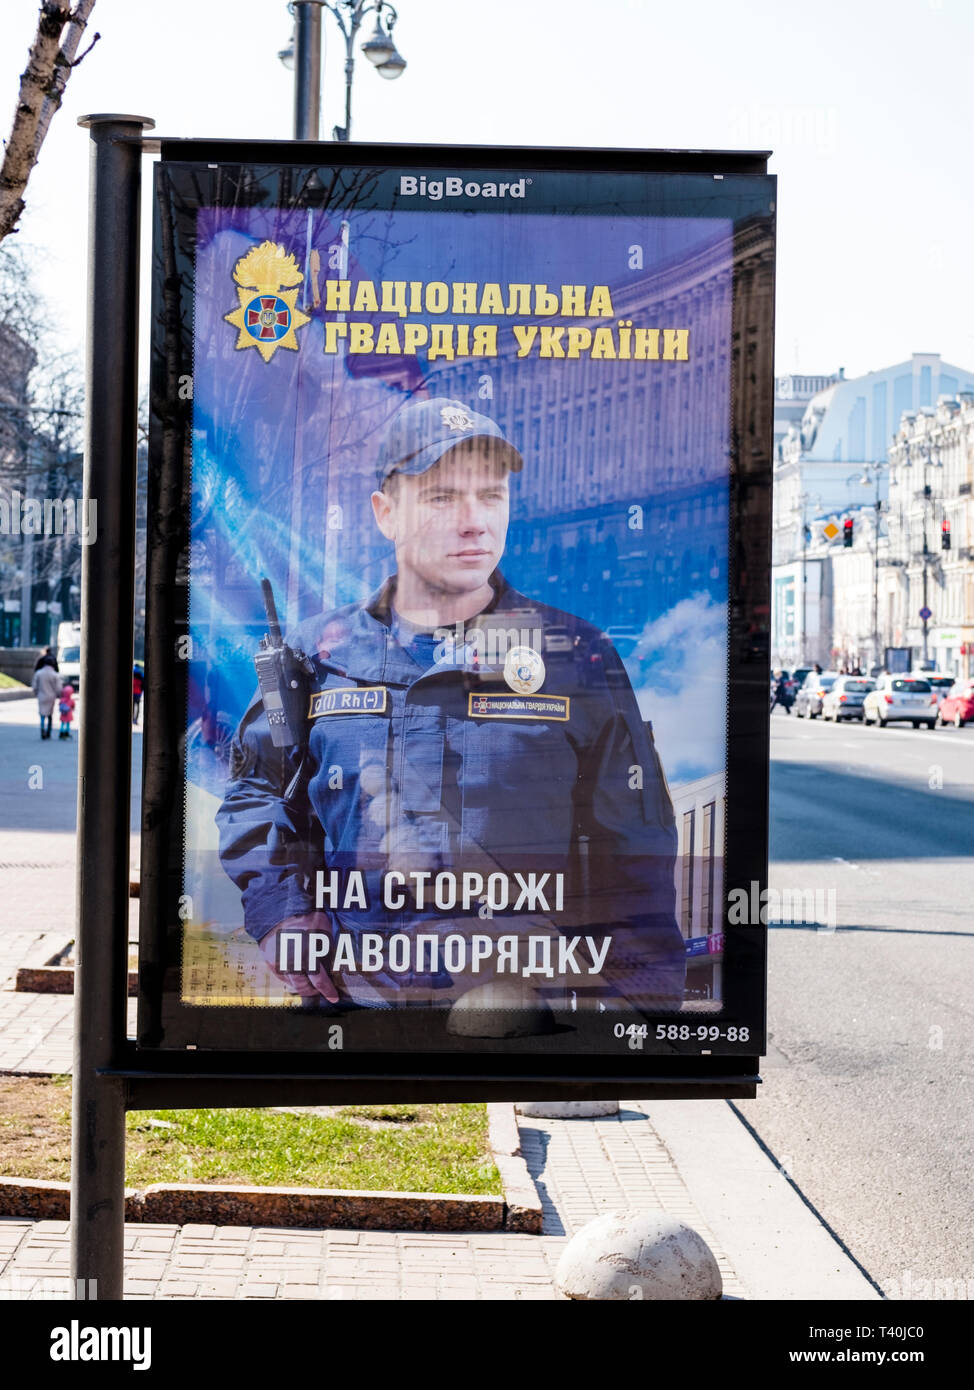 Advertising for security forces in Kiev, Ukraine, 2019. The Ukraine has been in an armed conflict with separatists in the Donbass region for several y - Stock Image